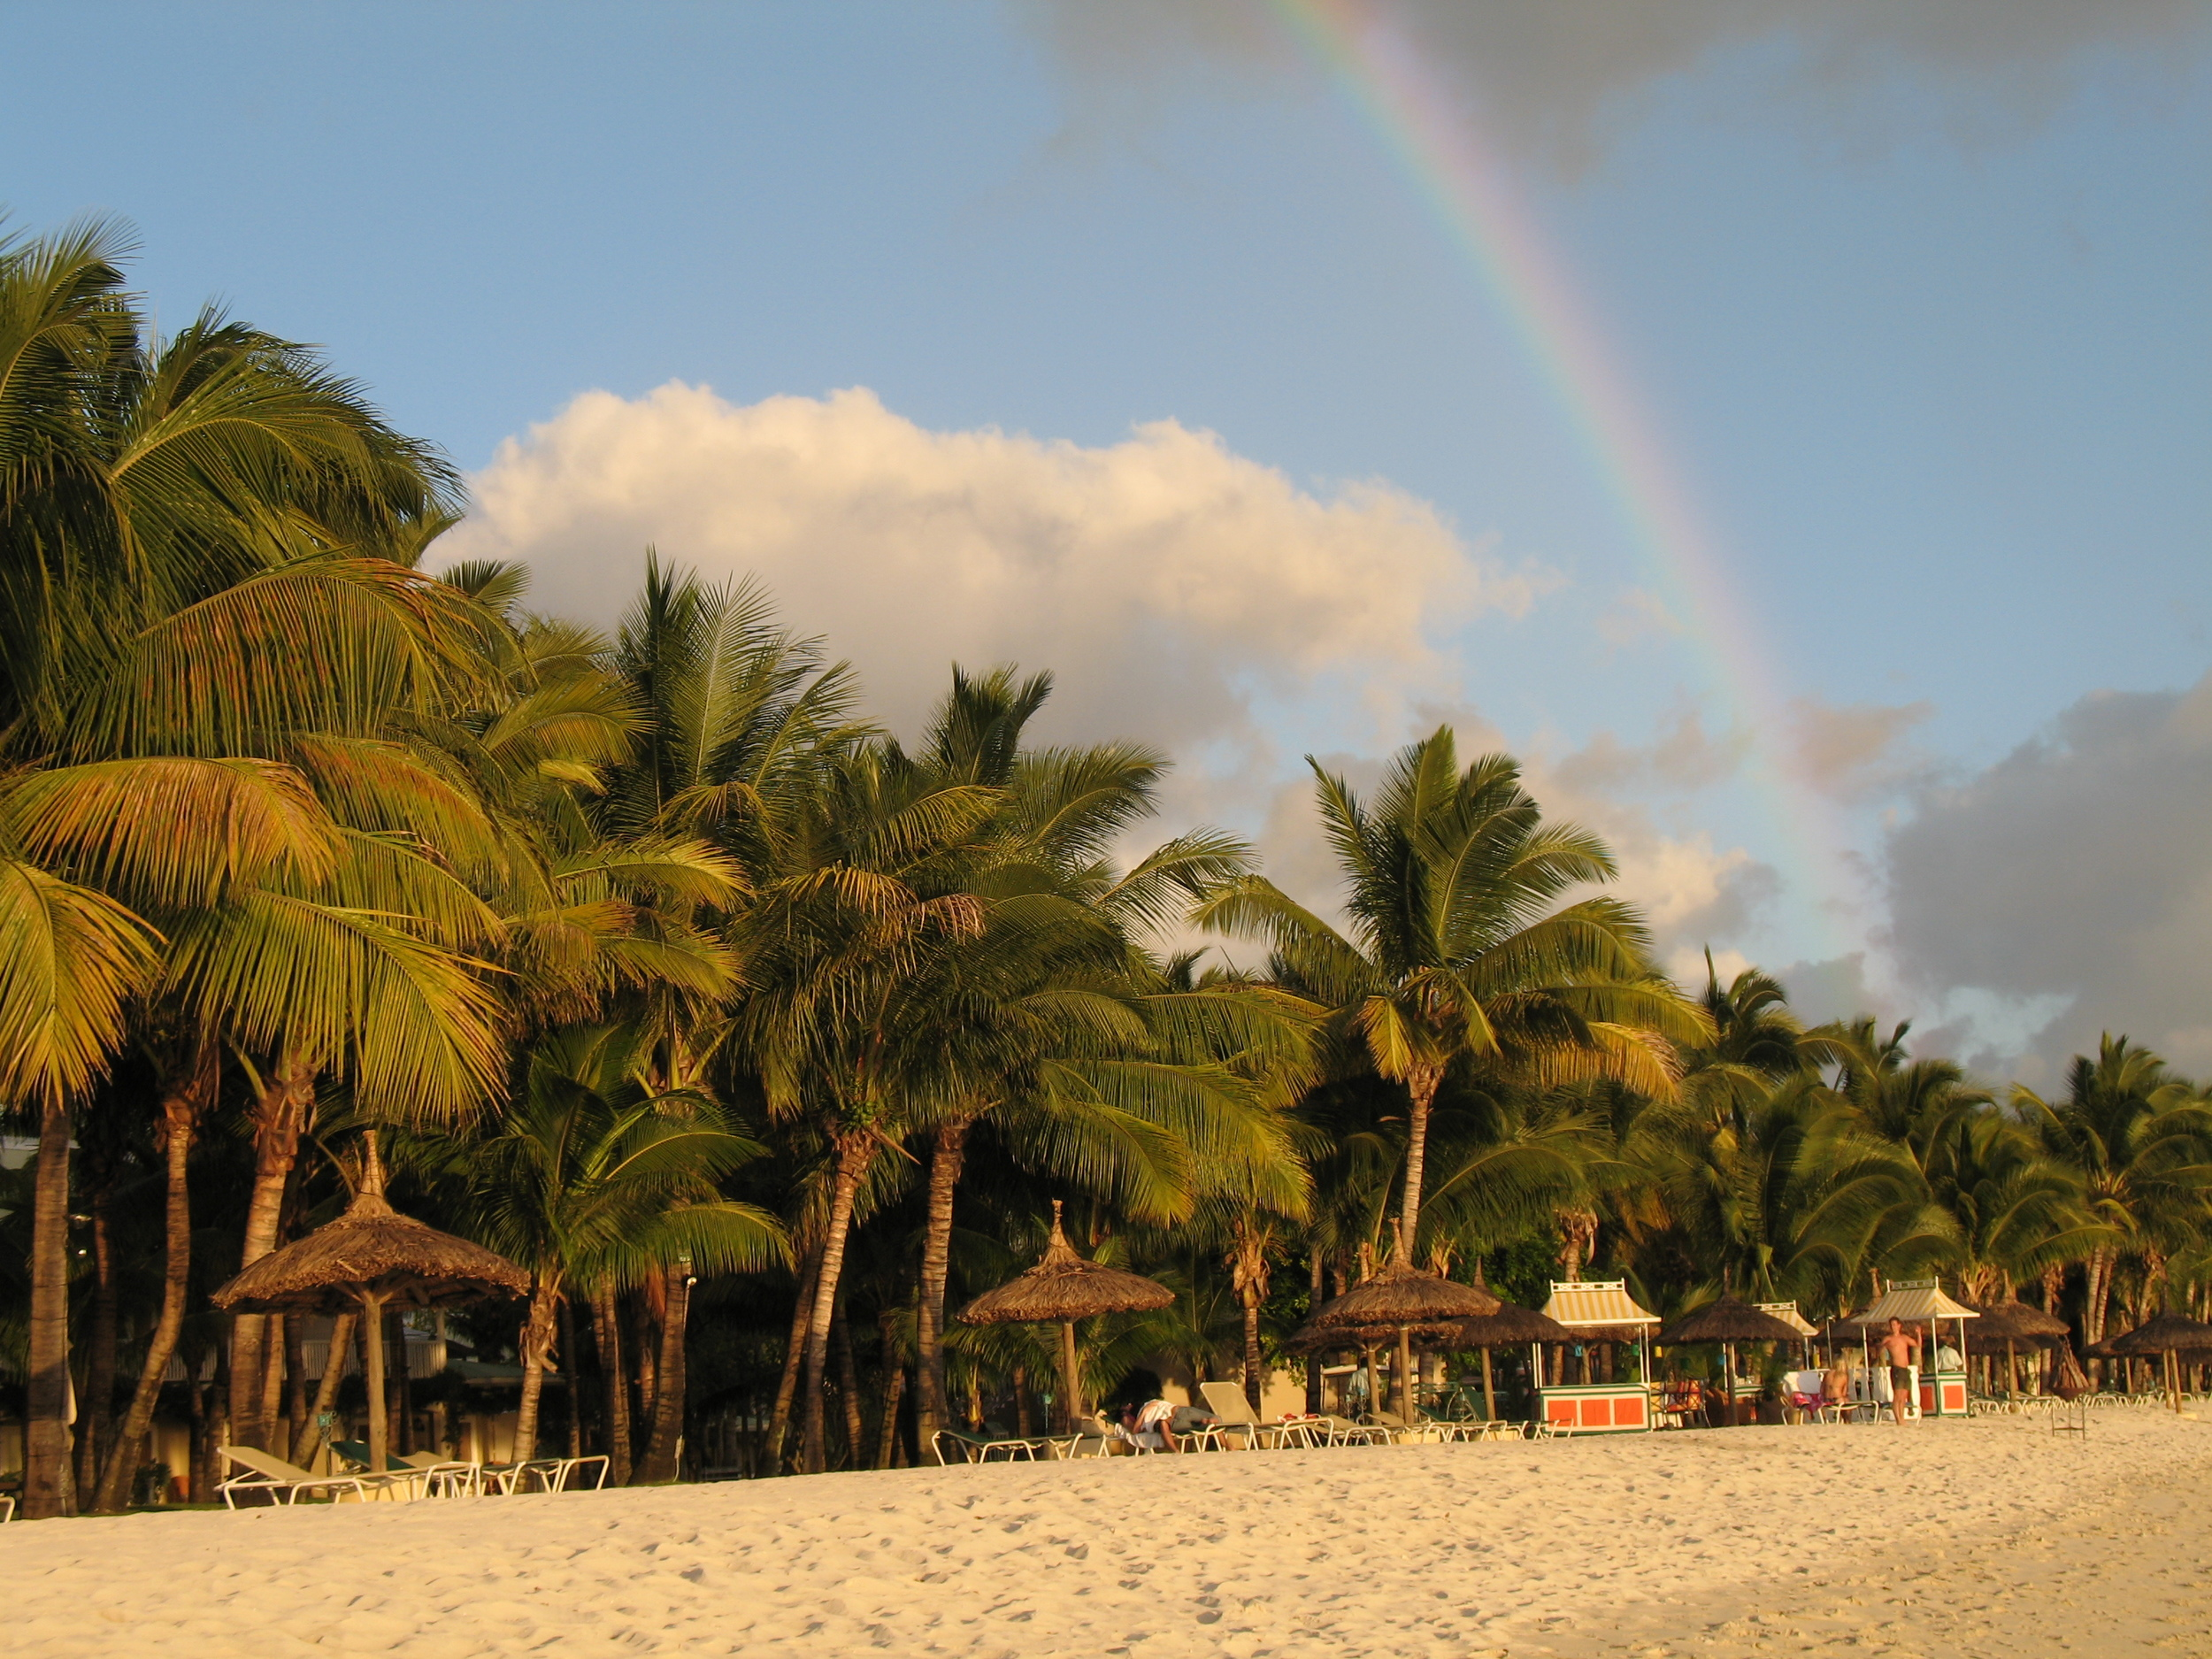 A rainbow over the beach in Mauritius. Pic by @jabberingjourno